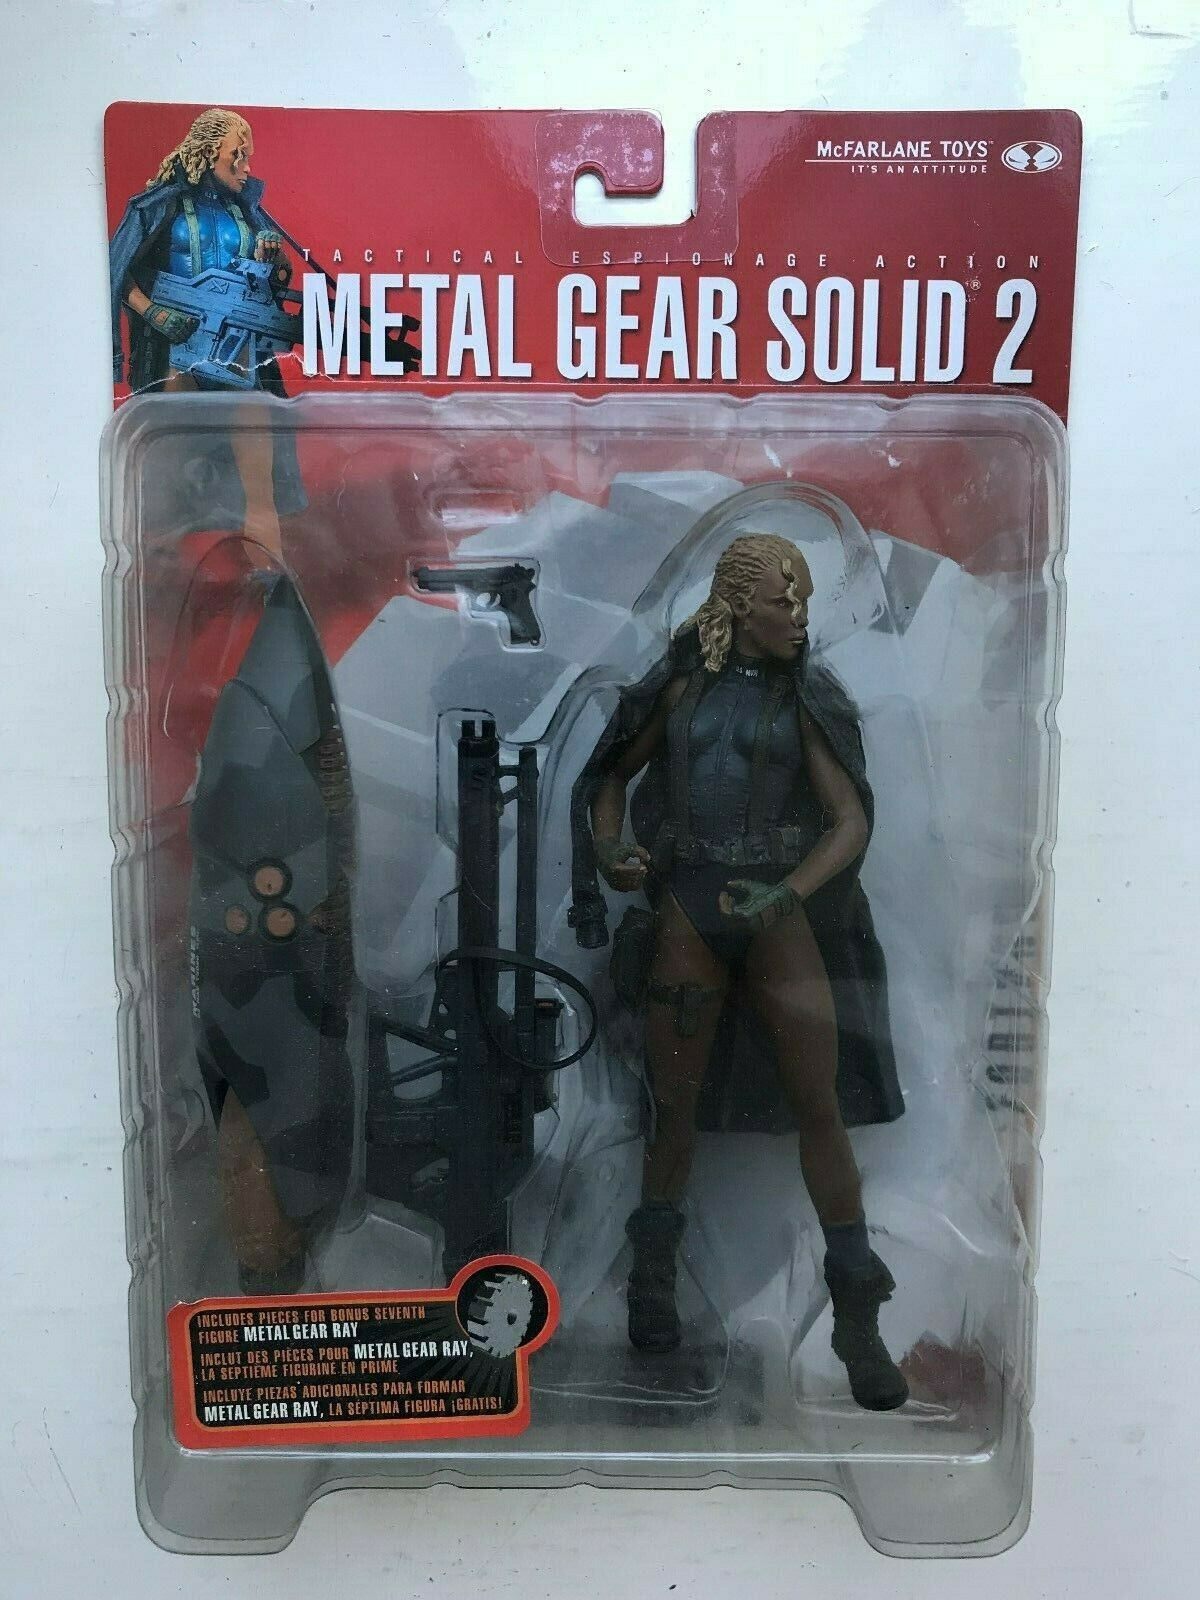 BOXED MCFARLANE METAL GEAR SOLID 2 SONS OF LIBERTY FORTUNE ACTION FIGURE